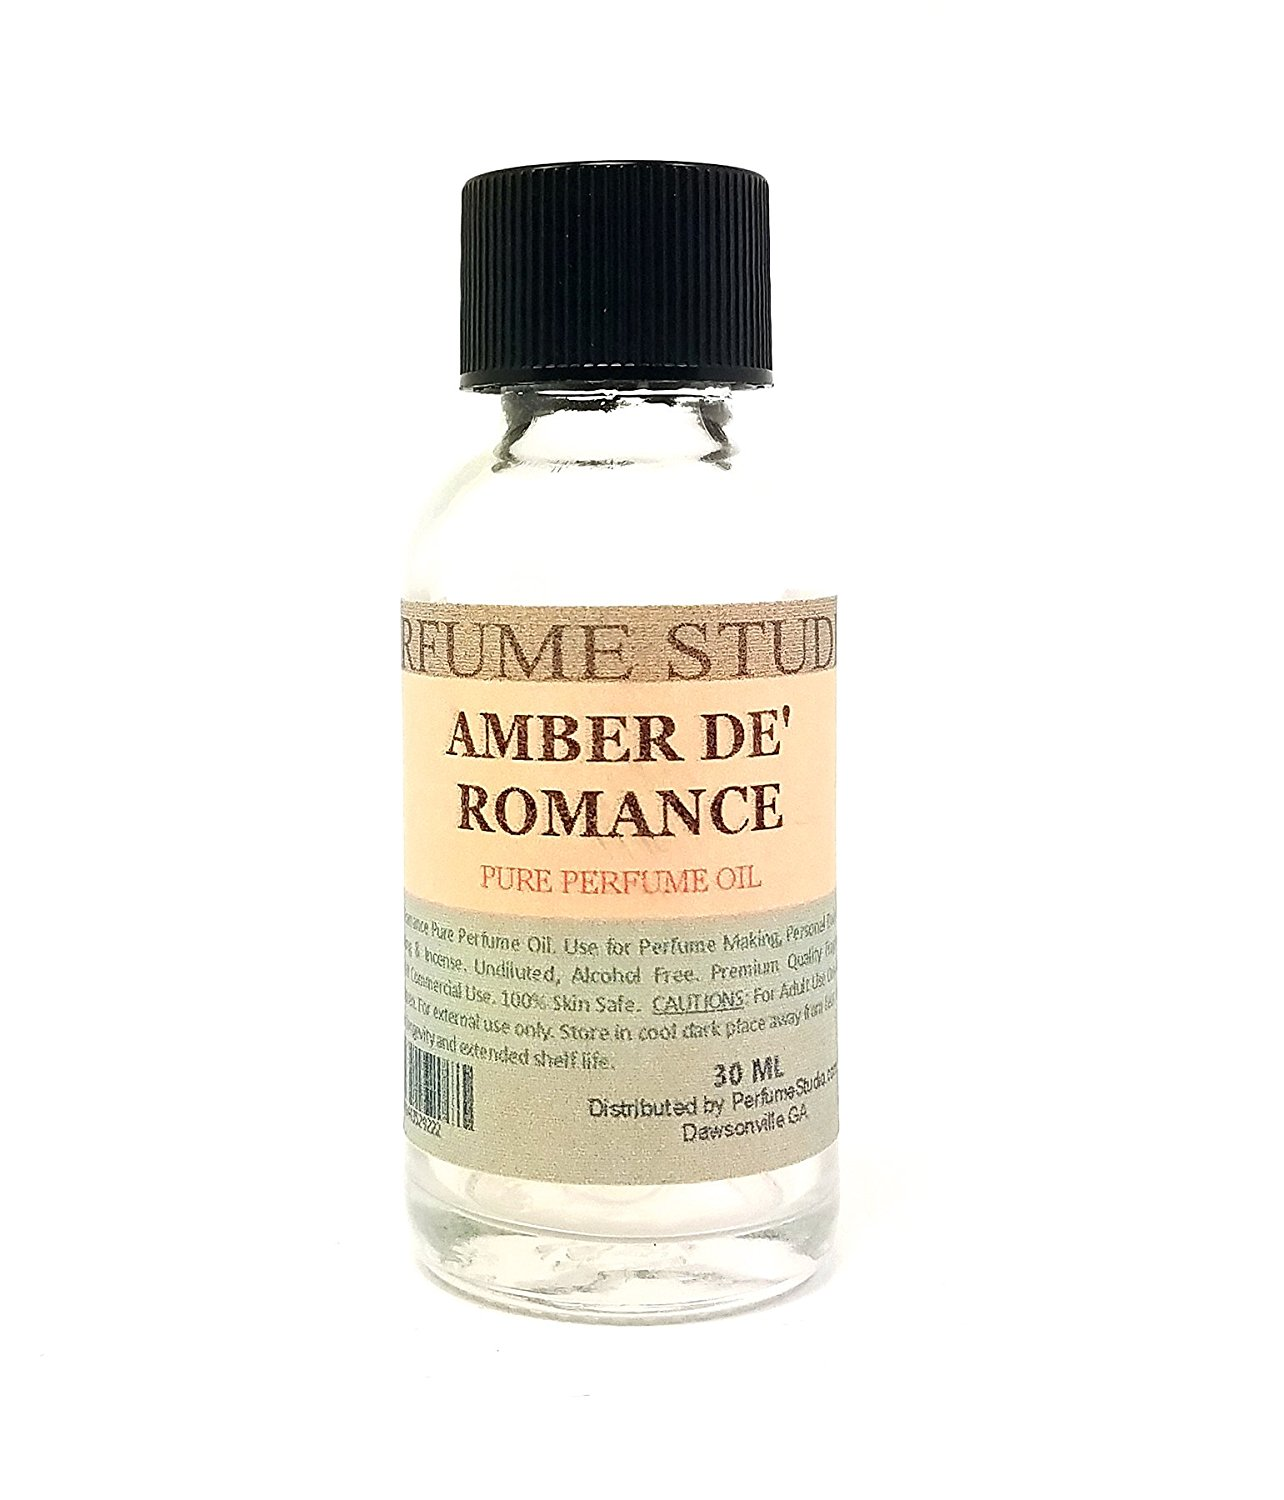 Amber De' Romance Pure Perfume Oil. Use for Perfume Making, Personal Body Oil, Soap, Candle Making & Incense; 1oz Splash-On Clear Glass Bottle. Pure Undiluted, Alcohol Free Undiluted Fragrance Oil